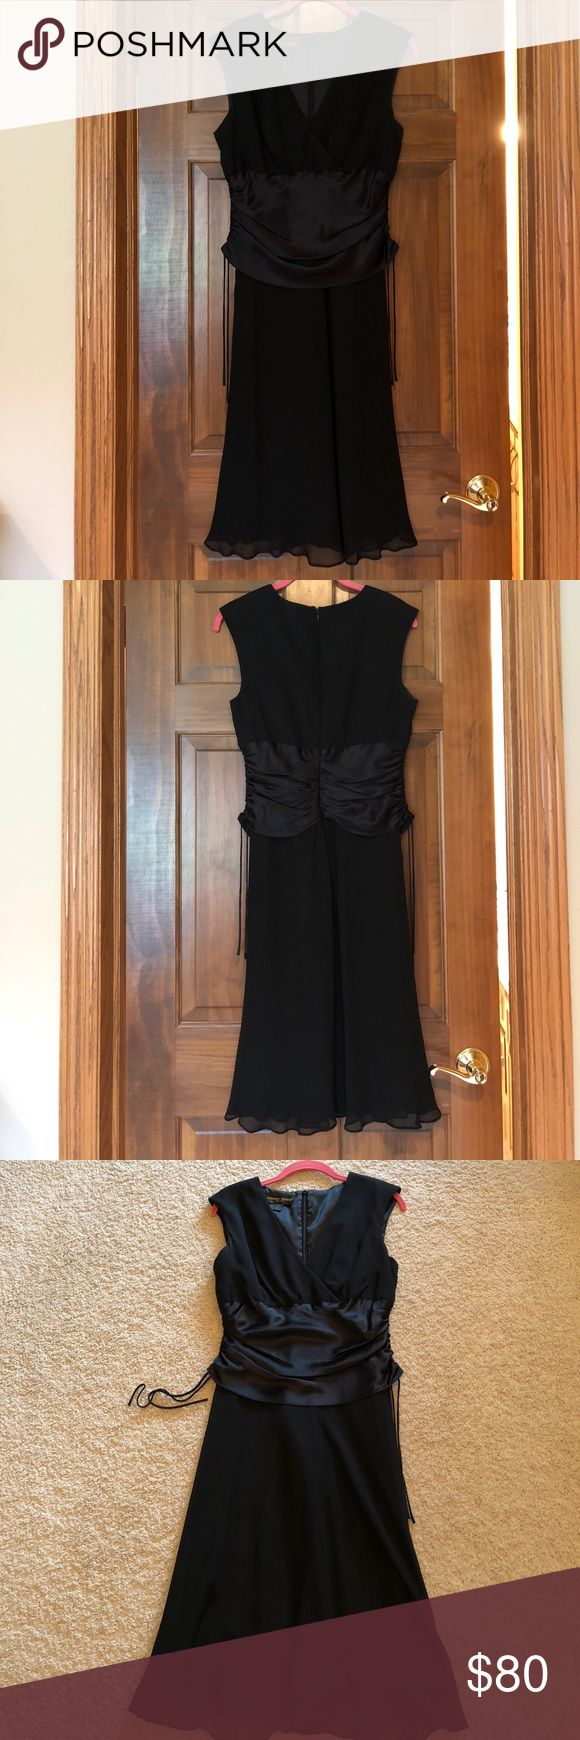 Donna Ricco black dress This Donna Ricco Little Black dress is perfect for any occasion. It is a size 8 and has a zipper closure on back. There is satin detail at the middle of the dress that can be ruched and then tied at the sides. The under layer is black  and has a black layer over it. Donna Ricco Dresses